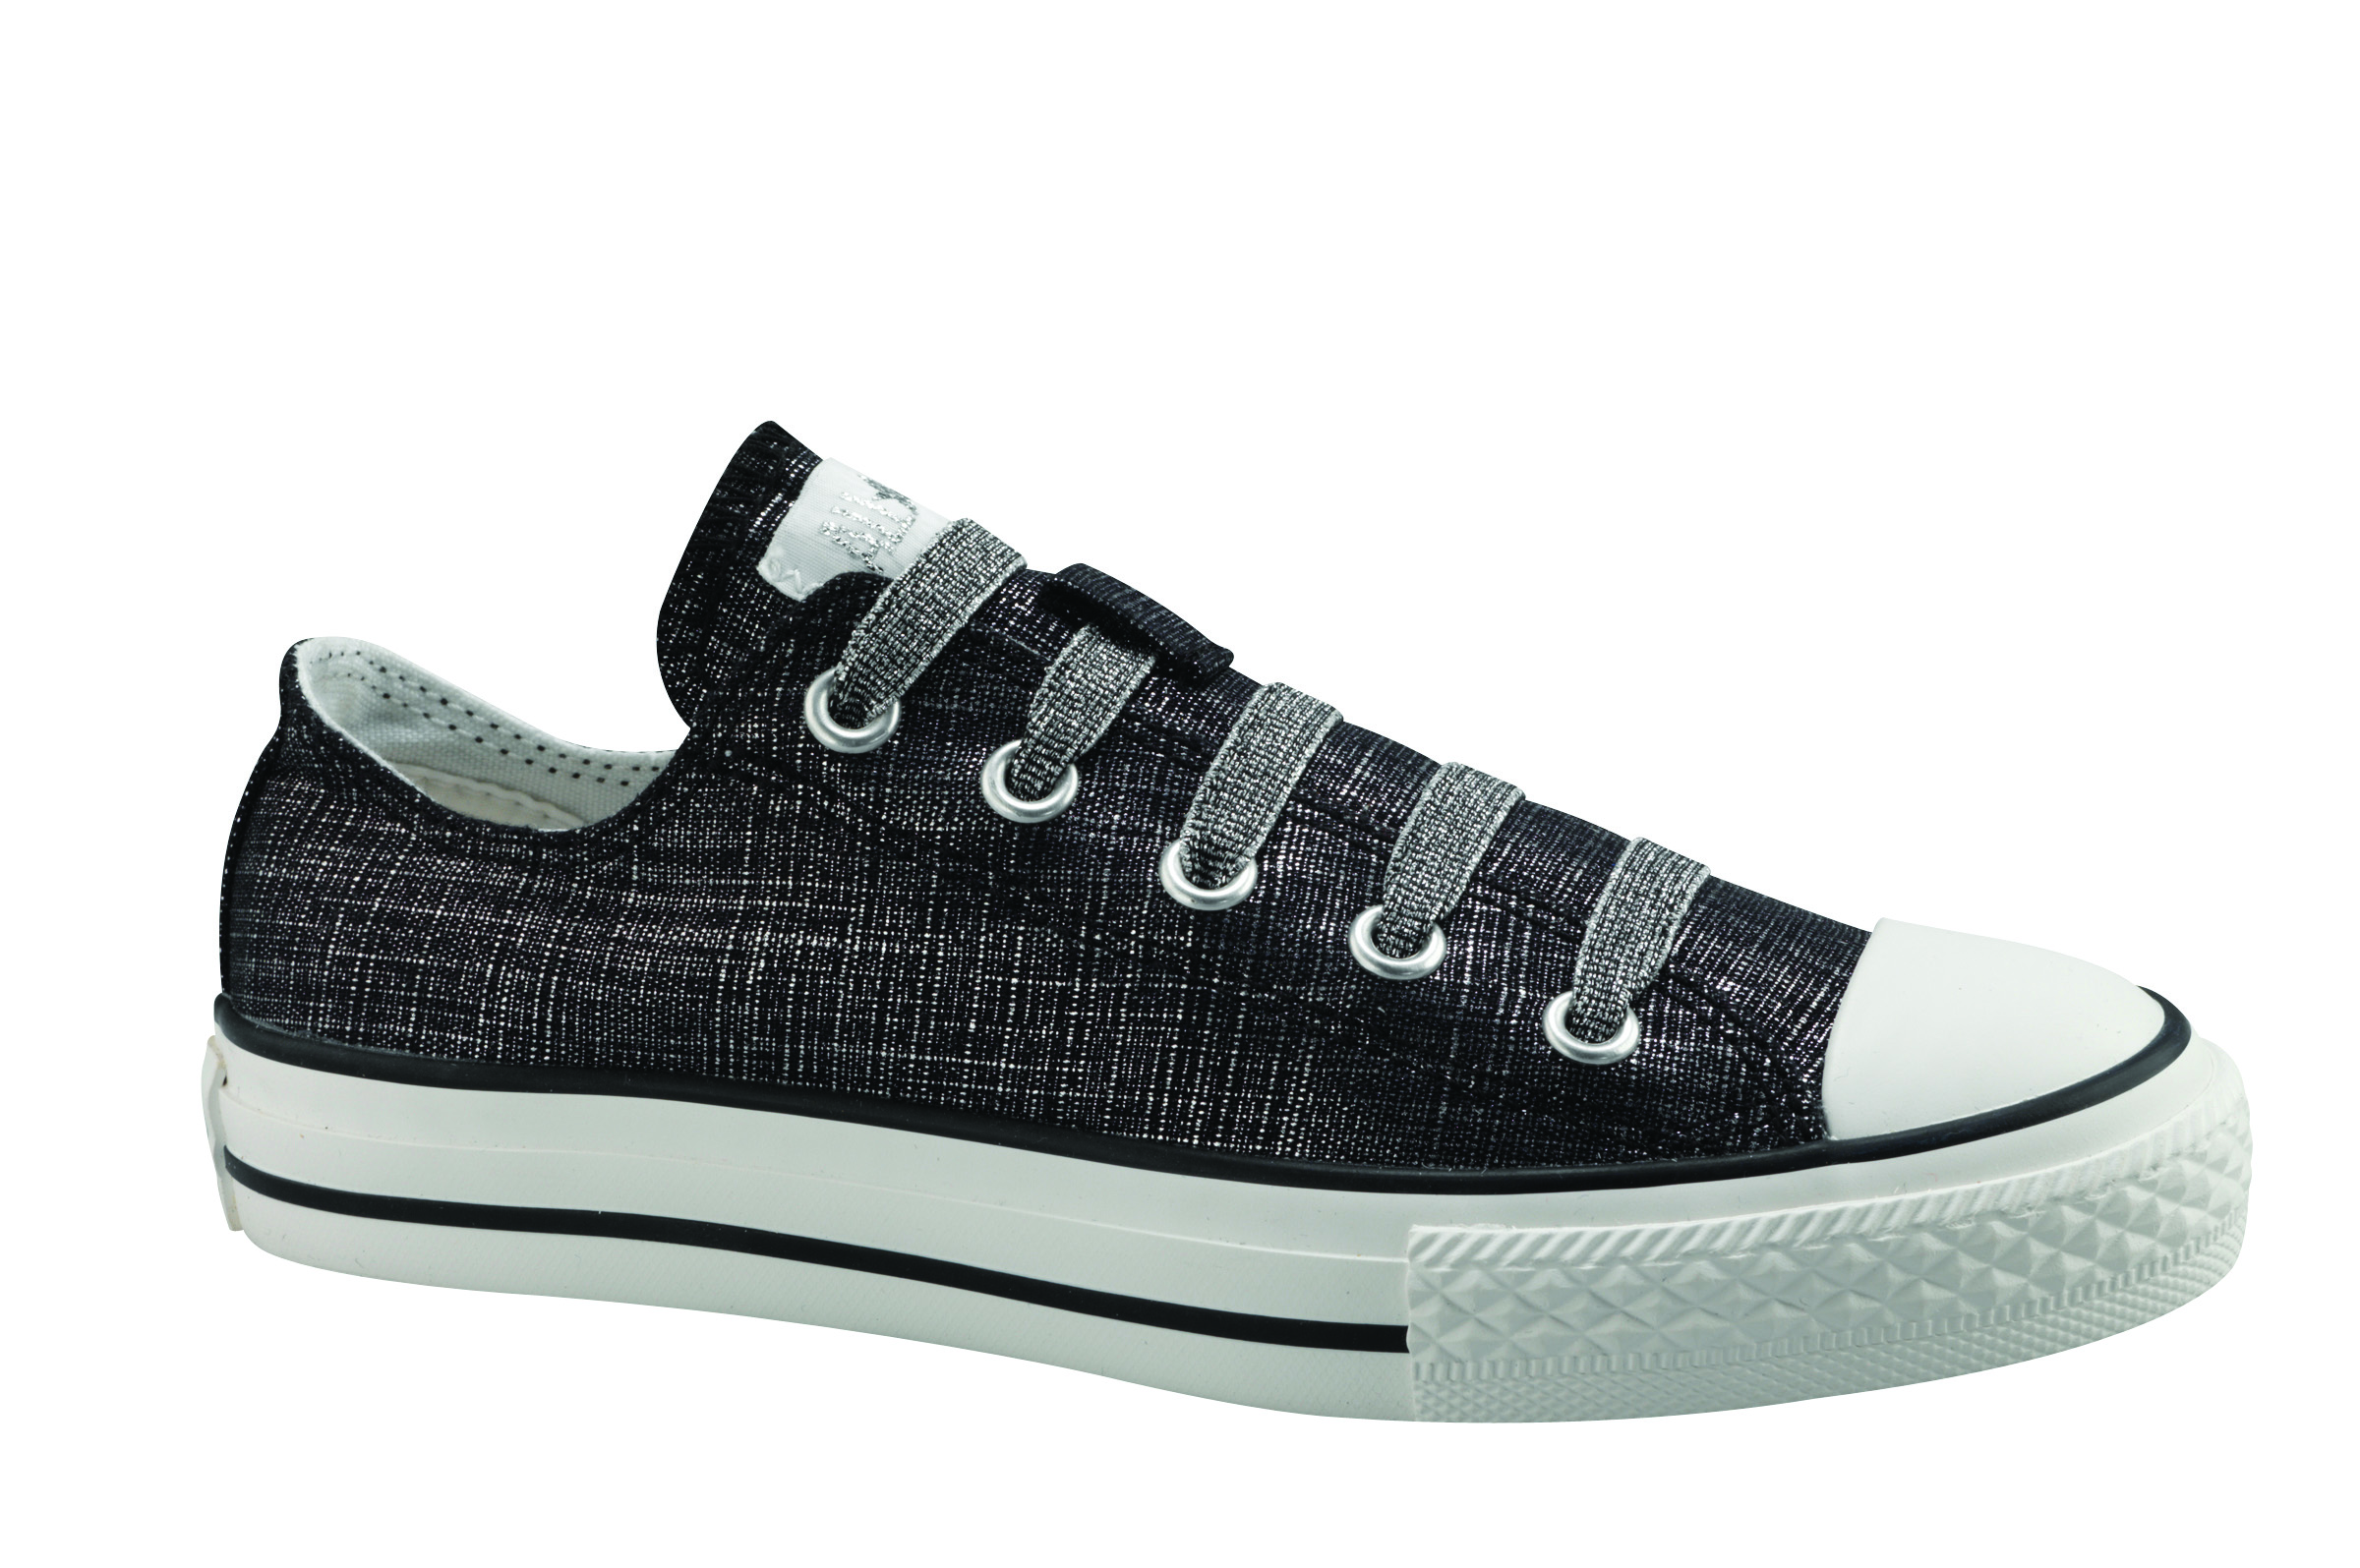 cc4576c3aefbe5 Sizes  11 - 6 US - CONVERSE W11   Girls-Casual   NZ s Leading Kids ...